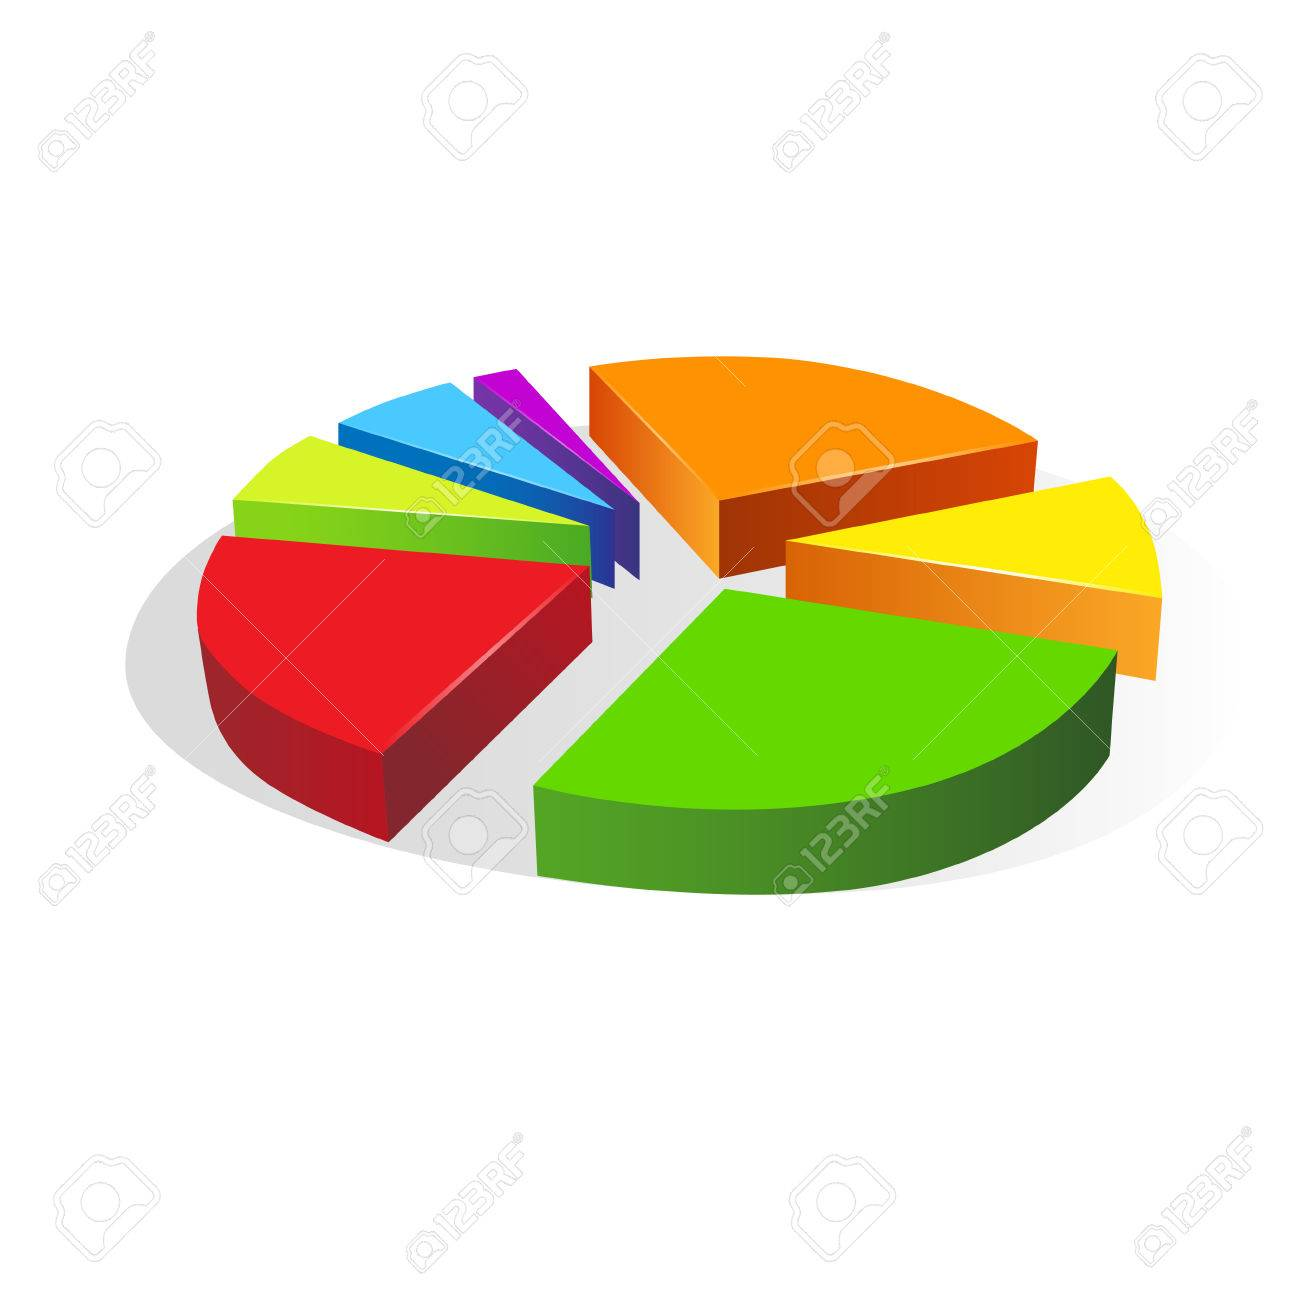 Jquery pie chart example choice image free any chart examples jquery animated pie chart image collections free any chart examples 3d pie chart jquery images free nvjuhfo Images